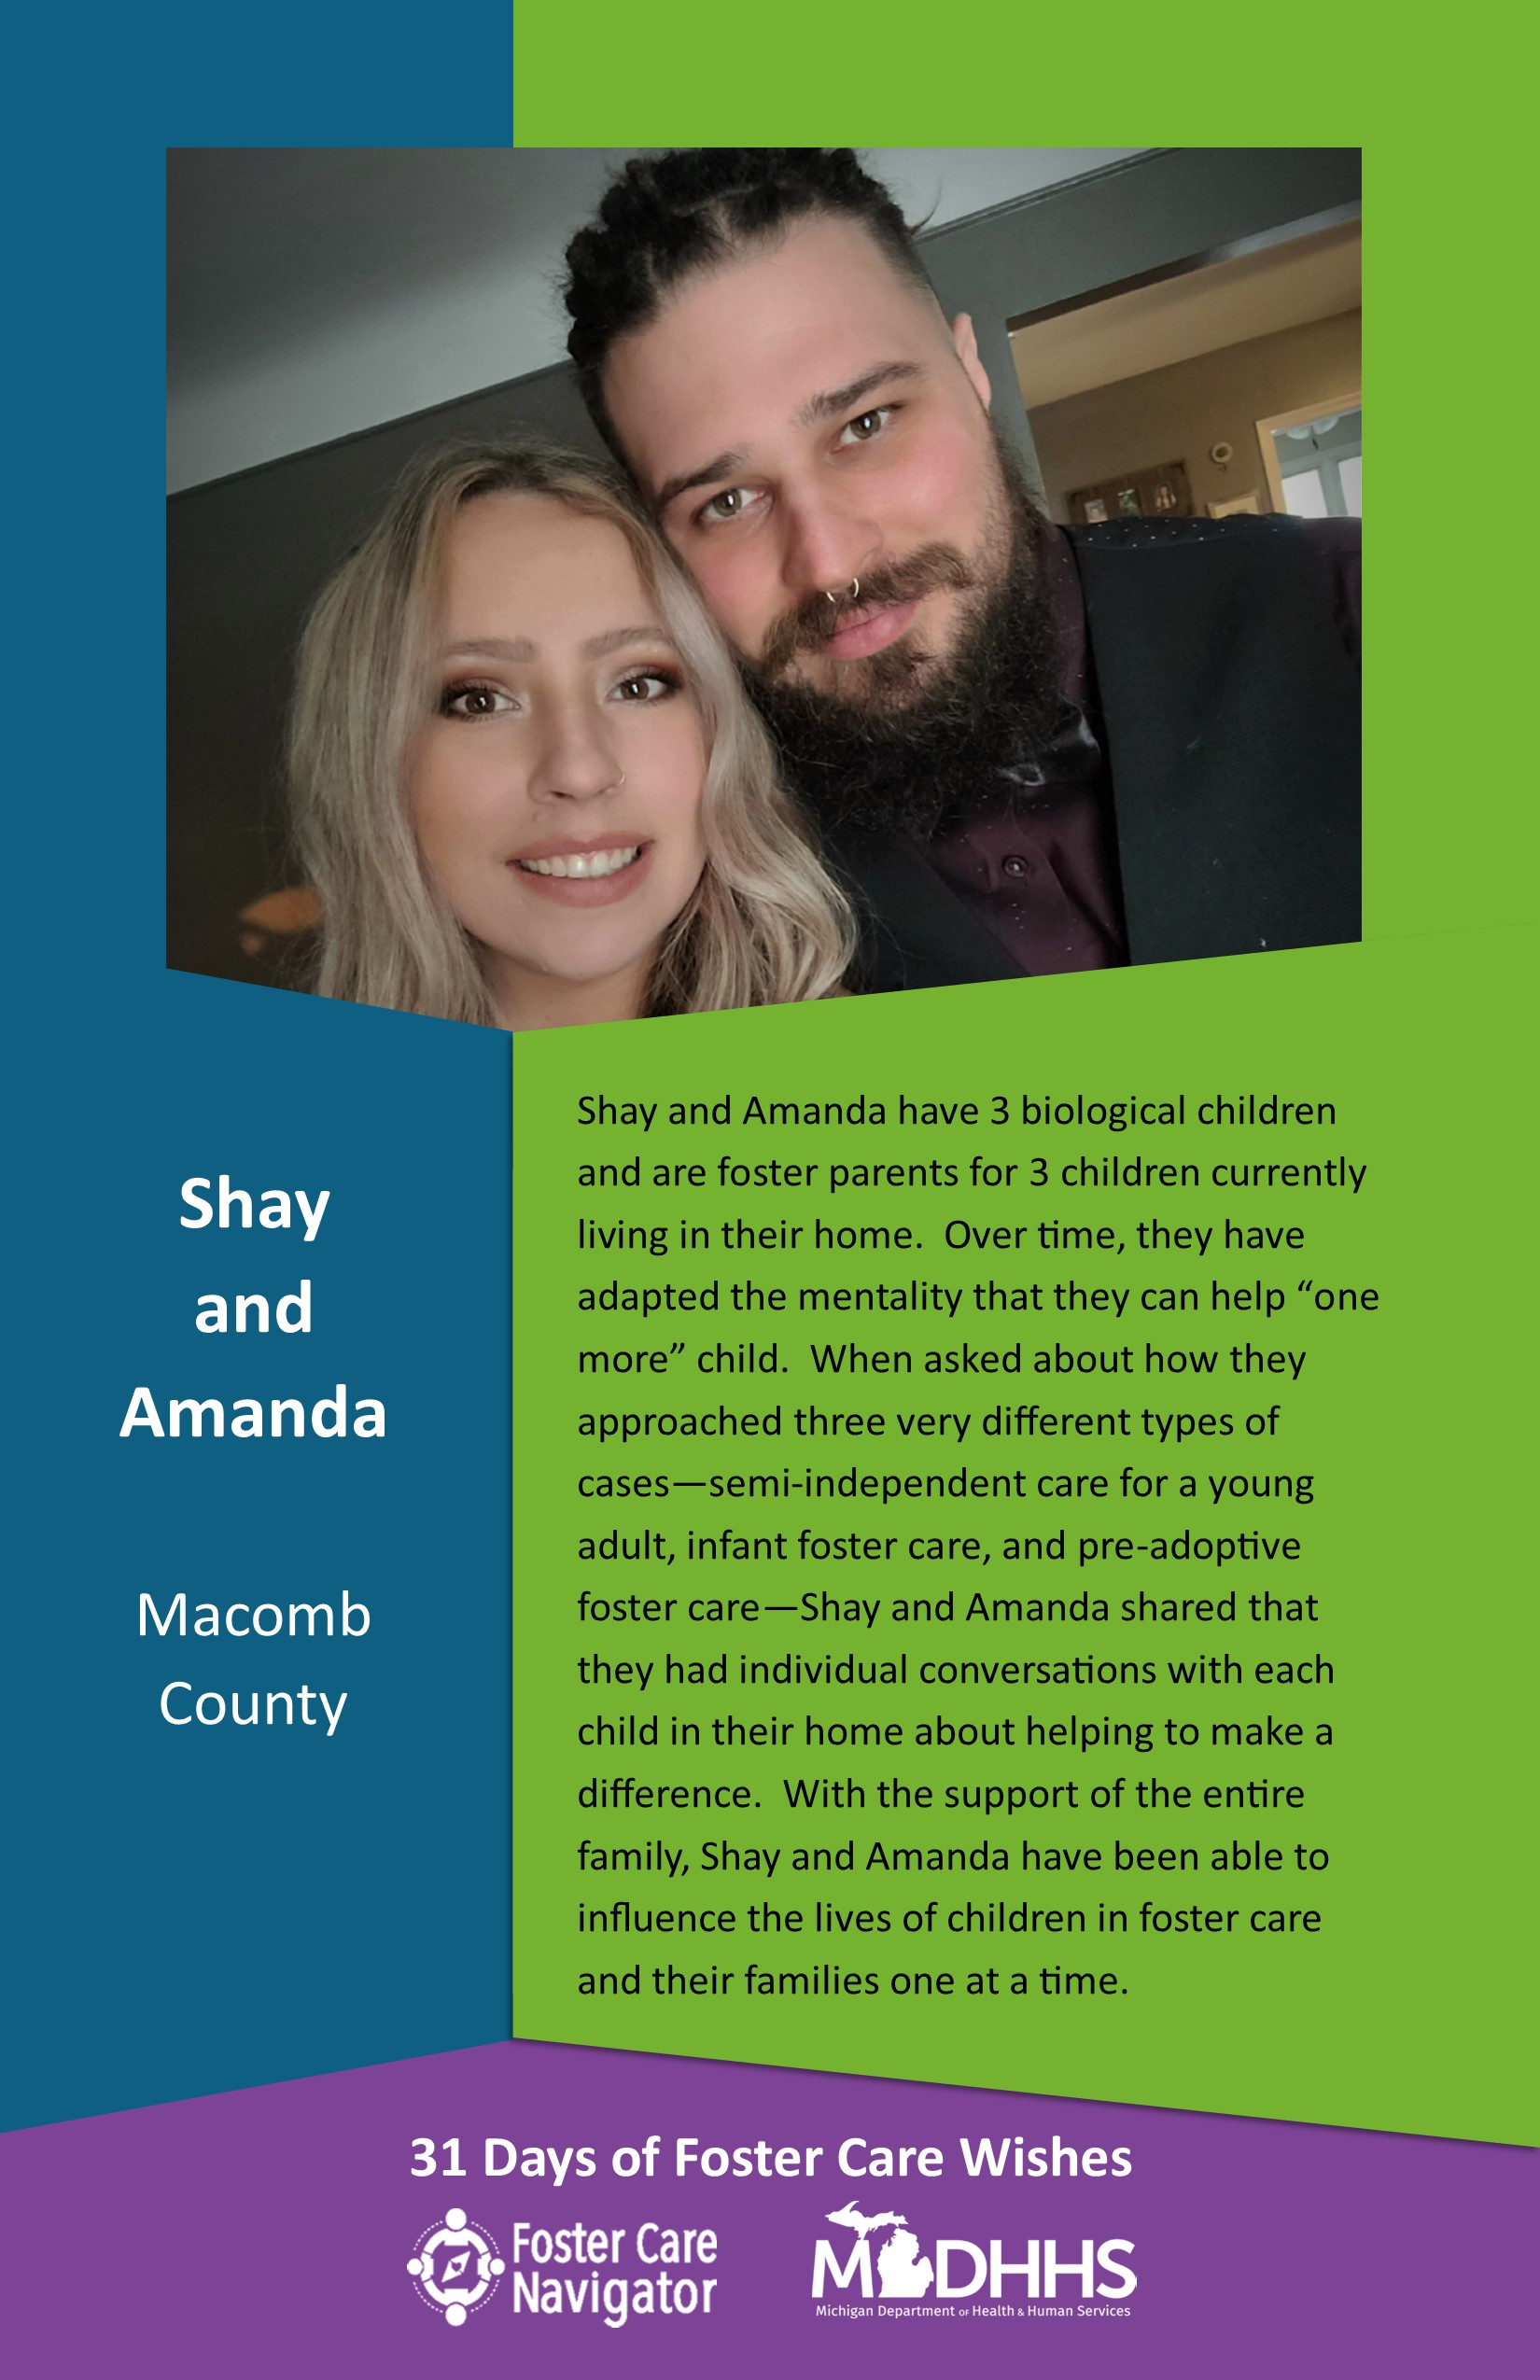 This full page feature includes all of the text listed in the body of this blog post as well as a photo of Shay and Amanda. The background is blue on the left, green on the right, and purple at the bottom of the page where the logos are located.